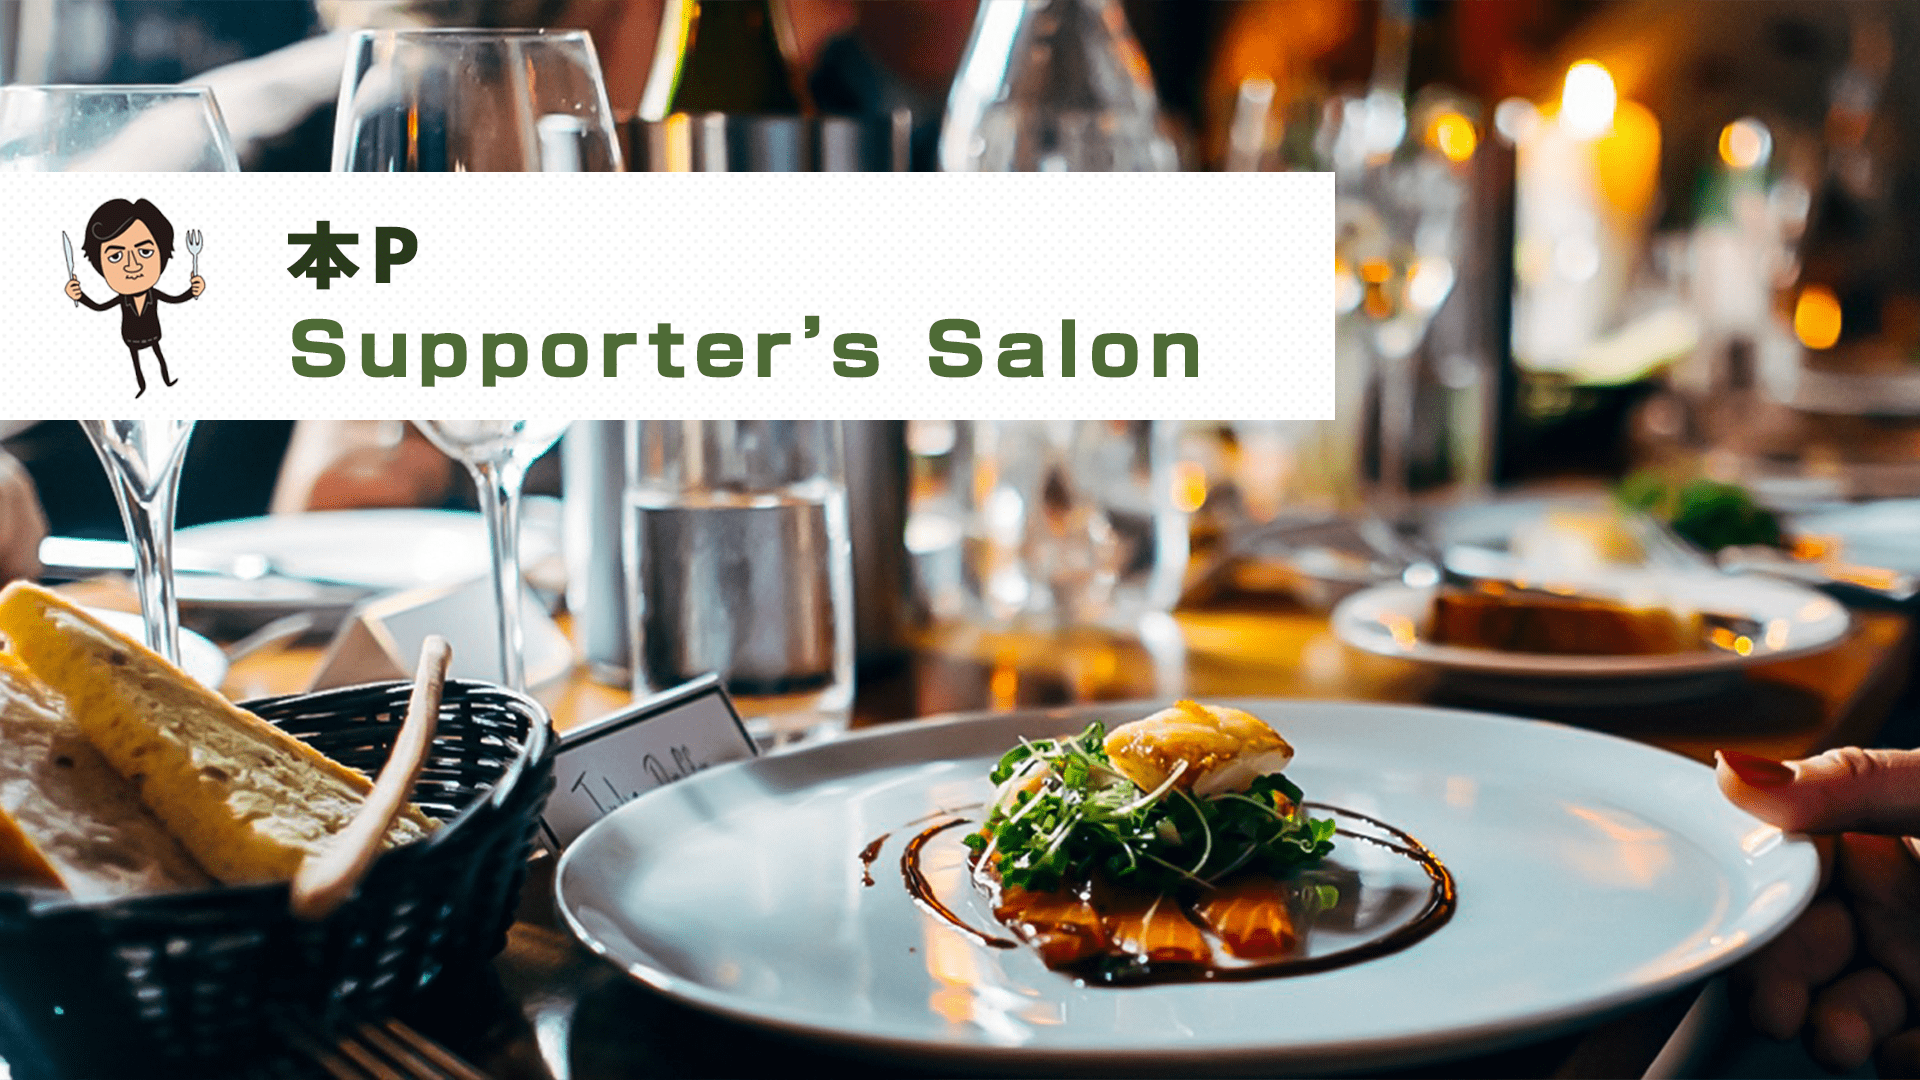 本P Supporter's Salon